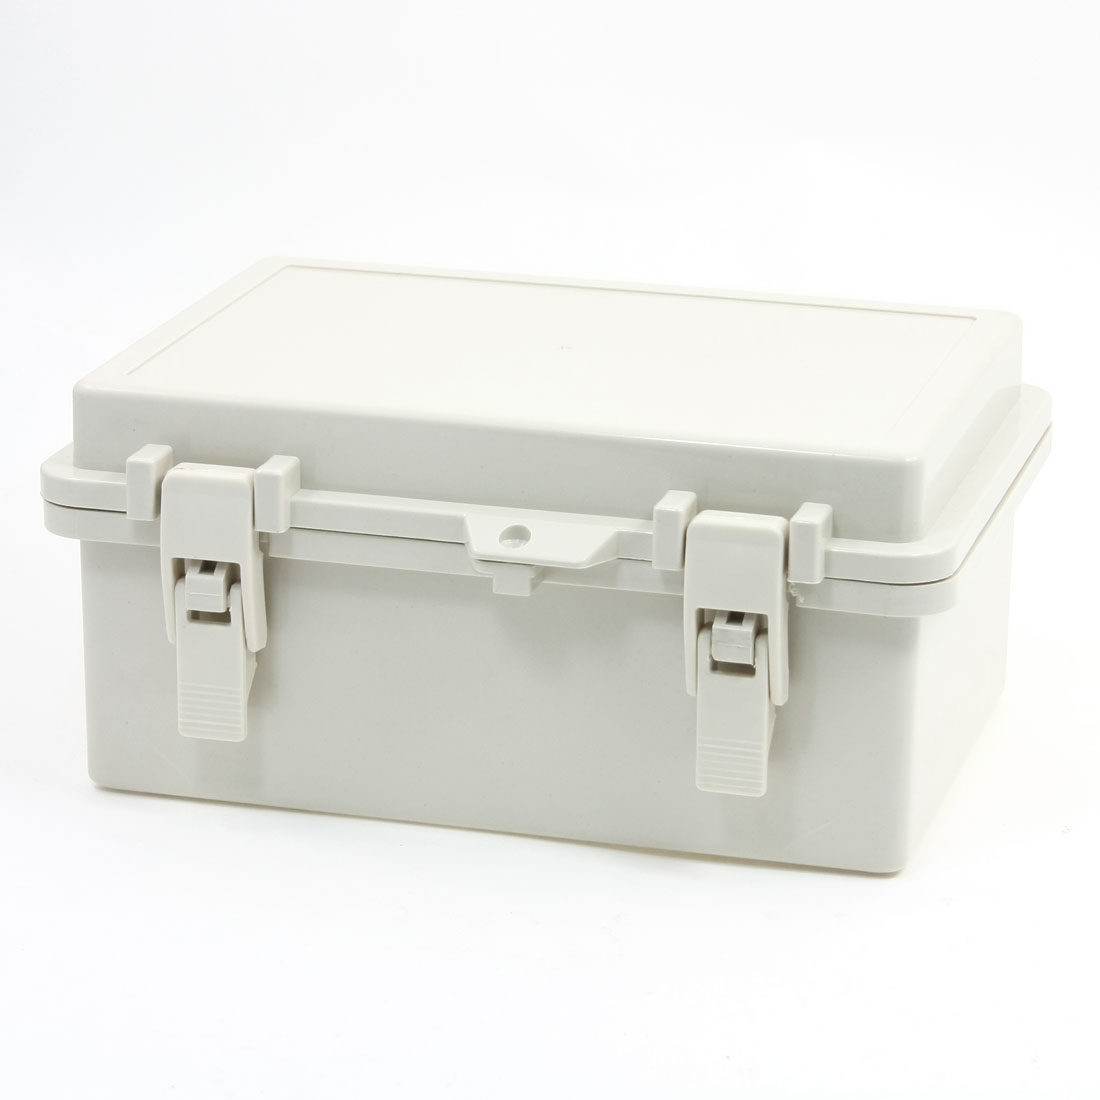 Surface Mounted Electric Junction Box 240mmx170mmx110mm